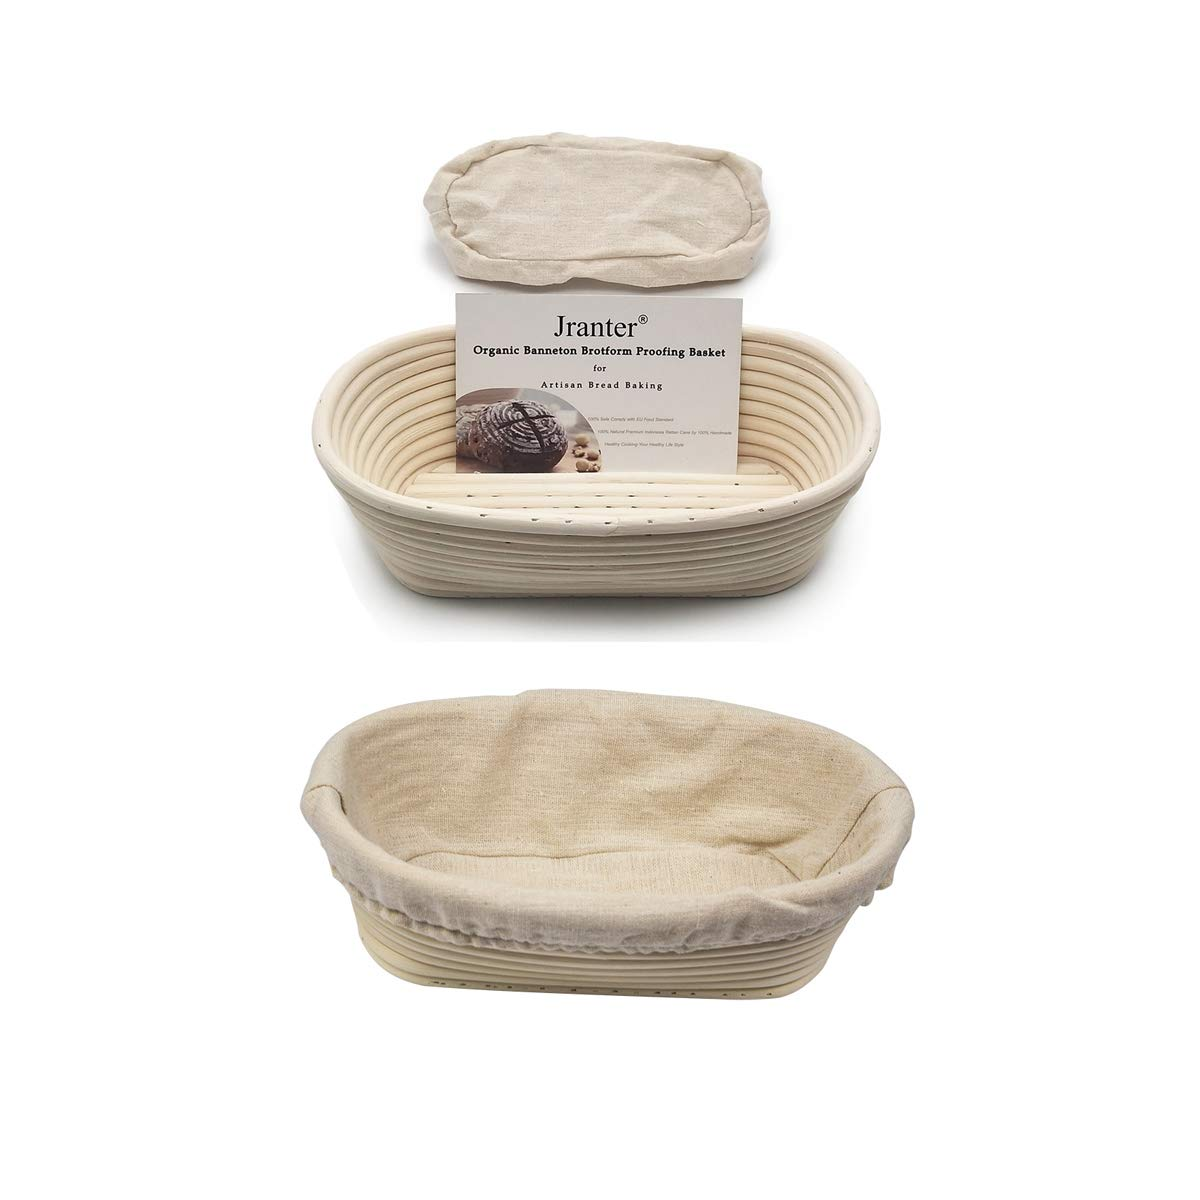 2 Pack of 10 Inch Oval Brotform Banneton Proofing Baskets with Liner Bread Bowl for Baking Dough with Rising Pattern